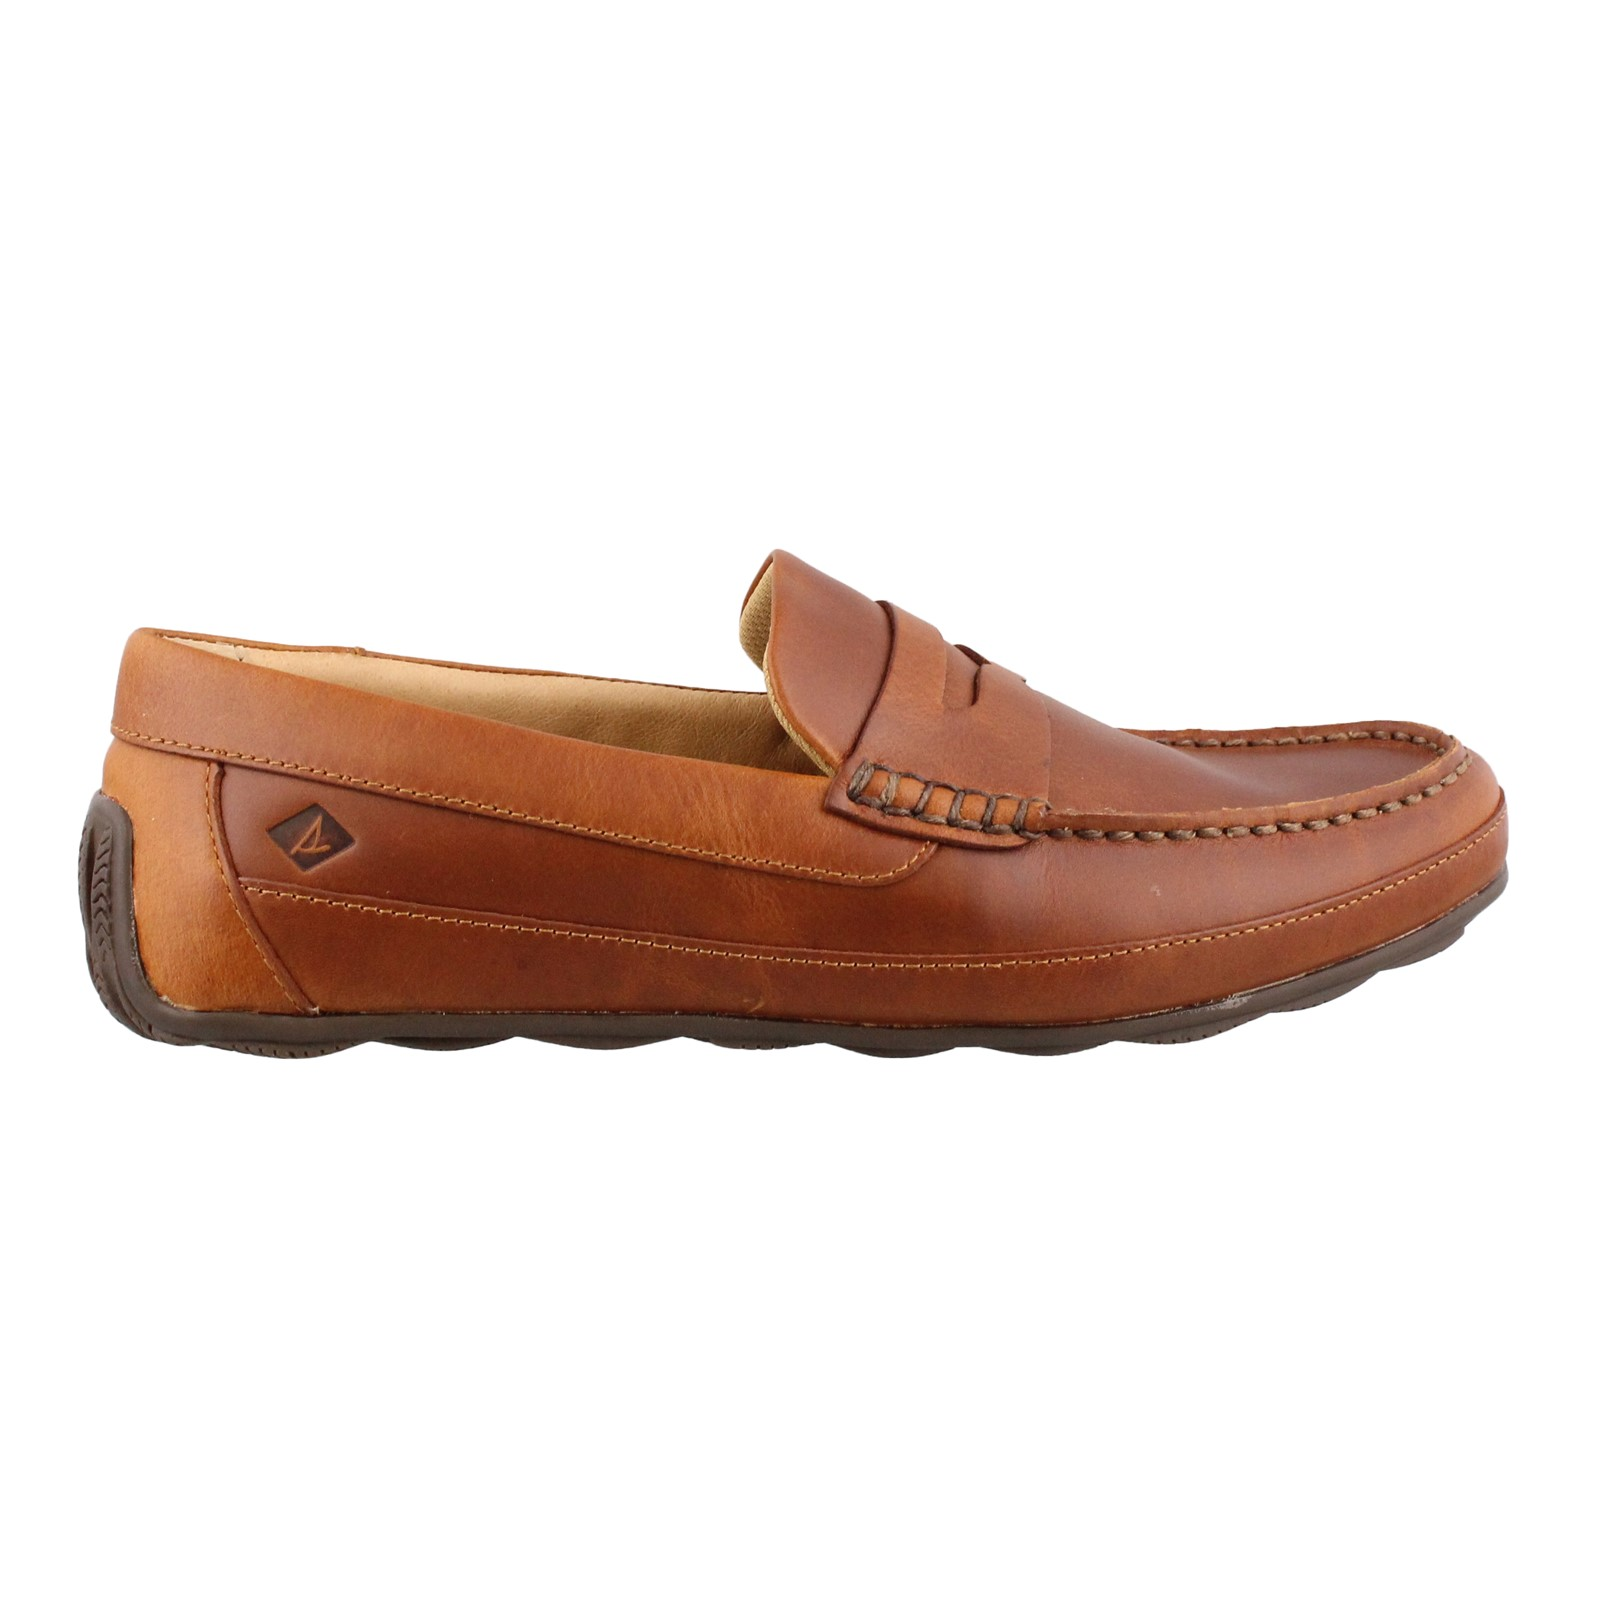 771f6e093 Men's Sperry, Hampden Penny Loafers | Peltz Shoes